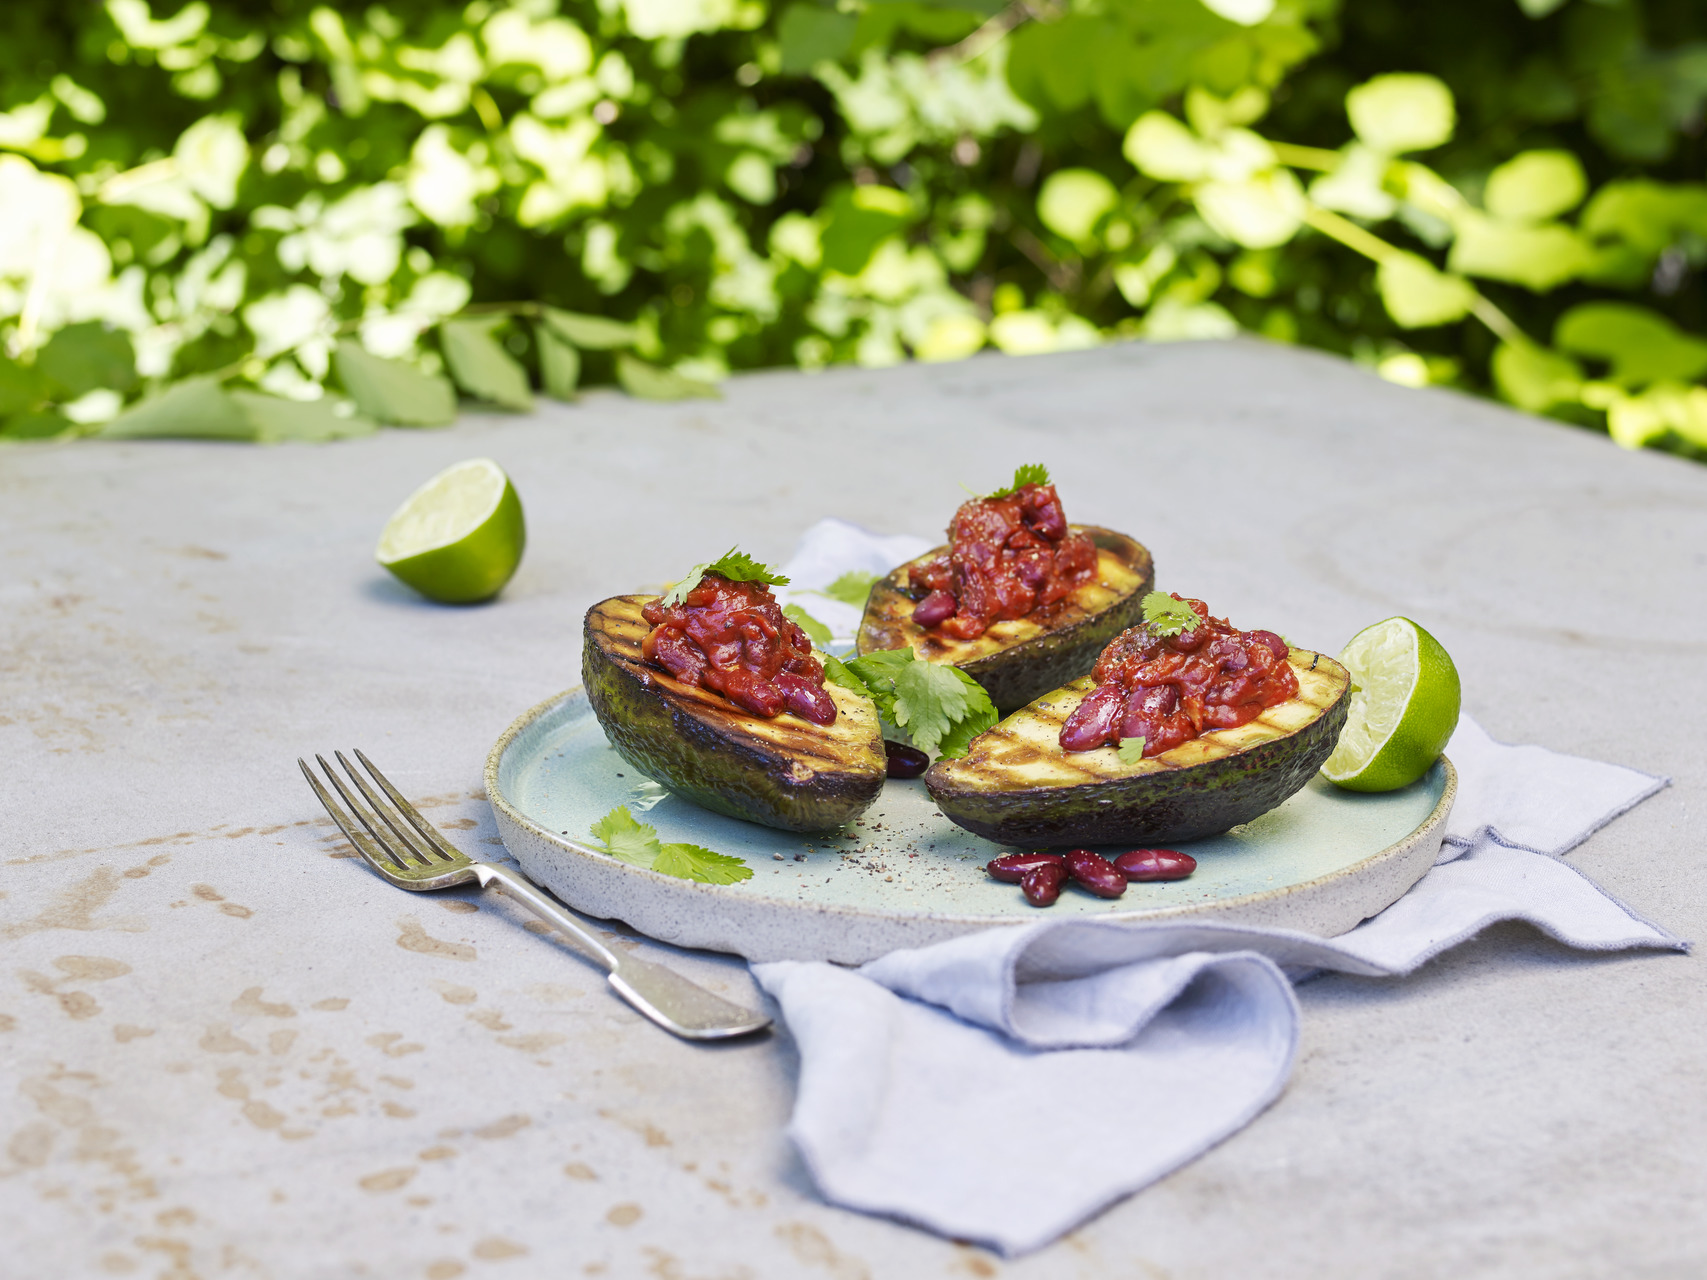 Tex mex-grillet avocado